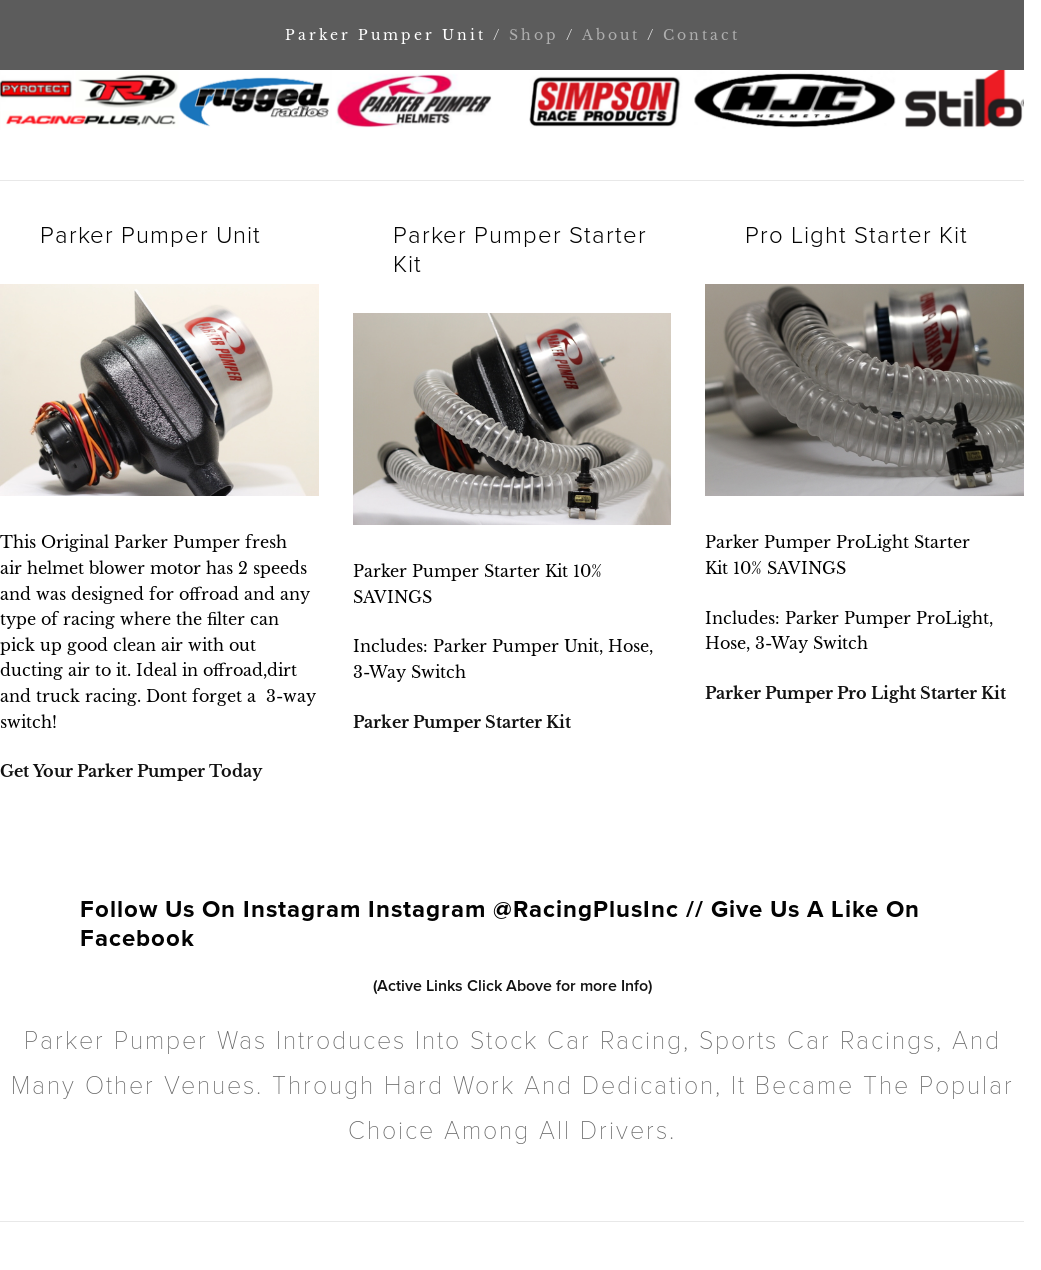 Racingplus Competitors Revenue And Employees Owler Company Profile 3 Way Switch History Website